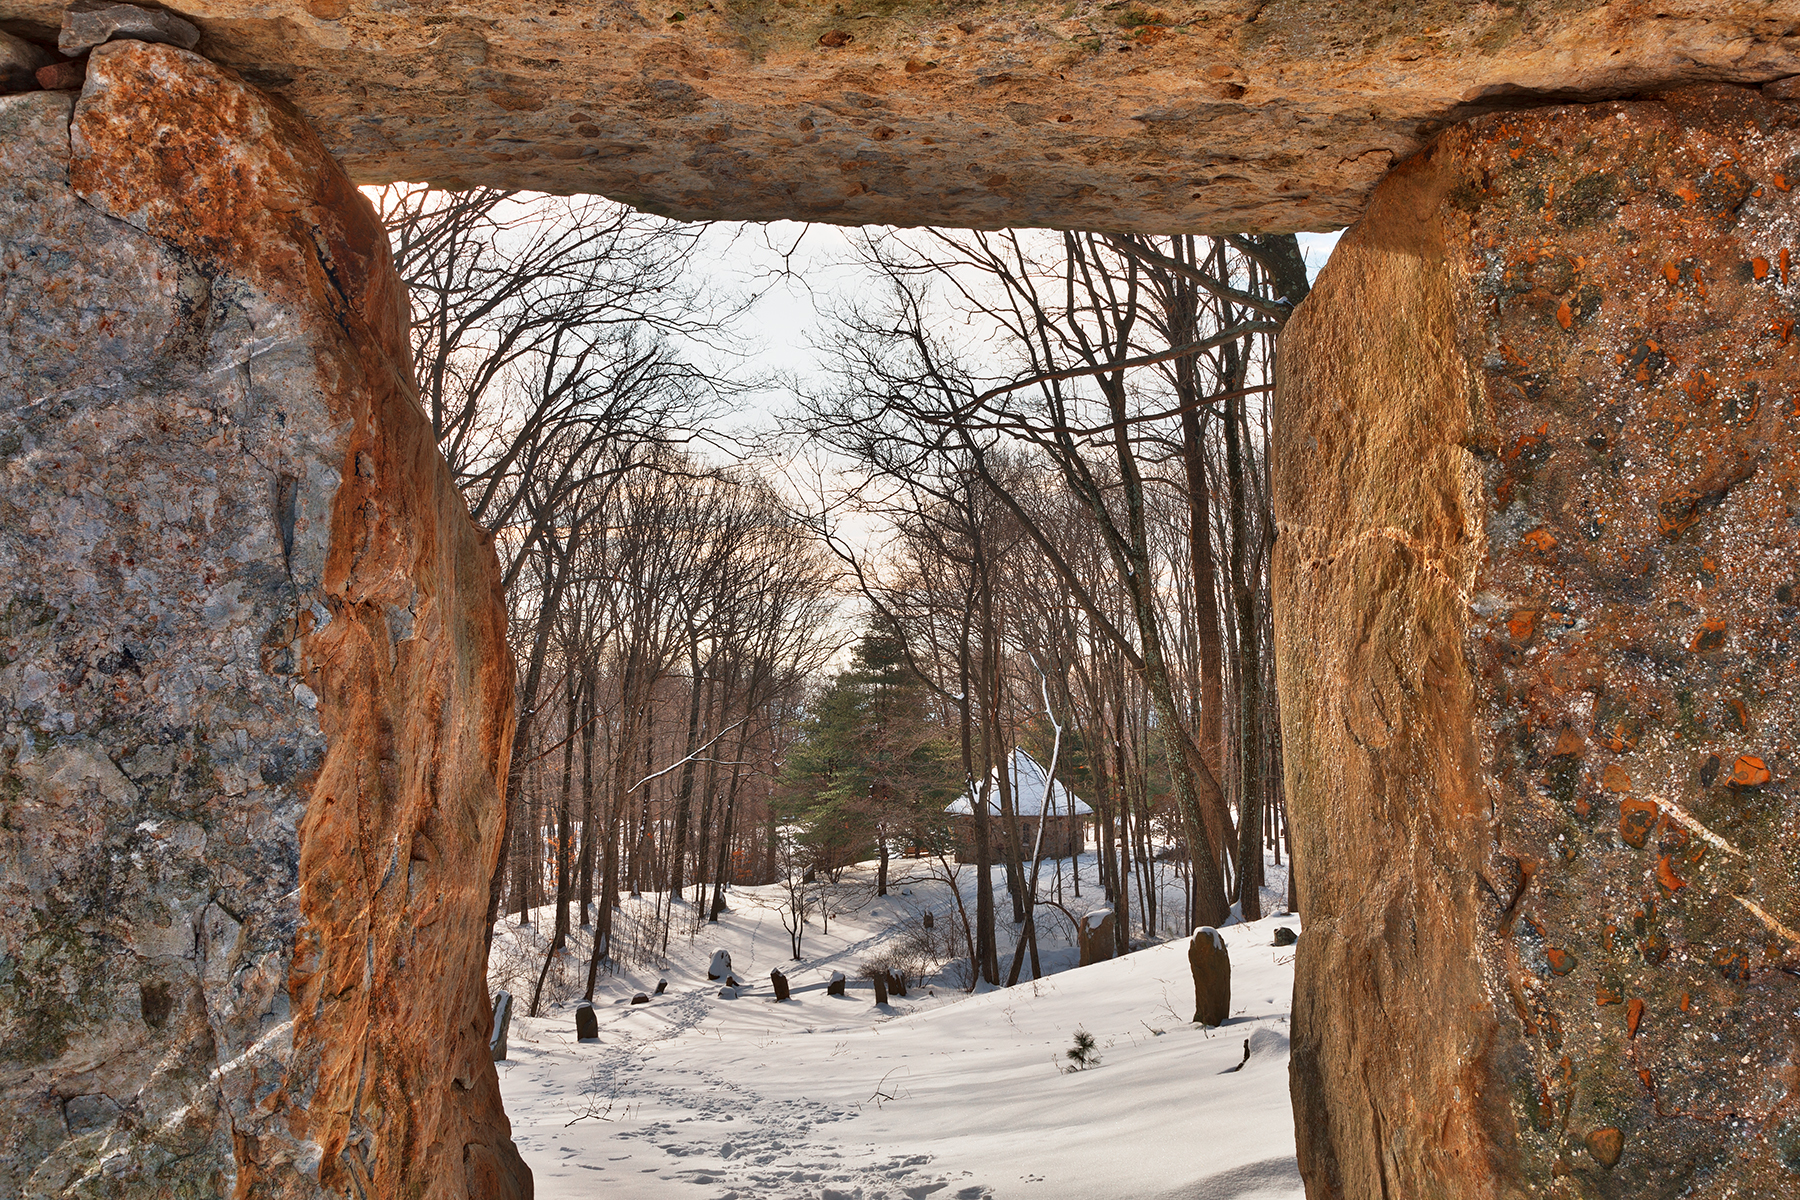 Winter megalith frame - hdr photo